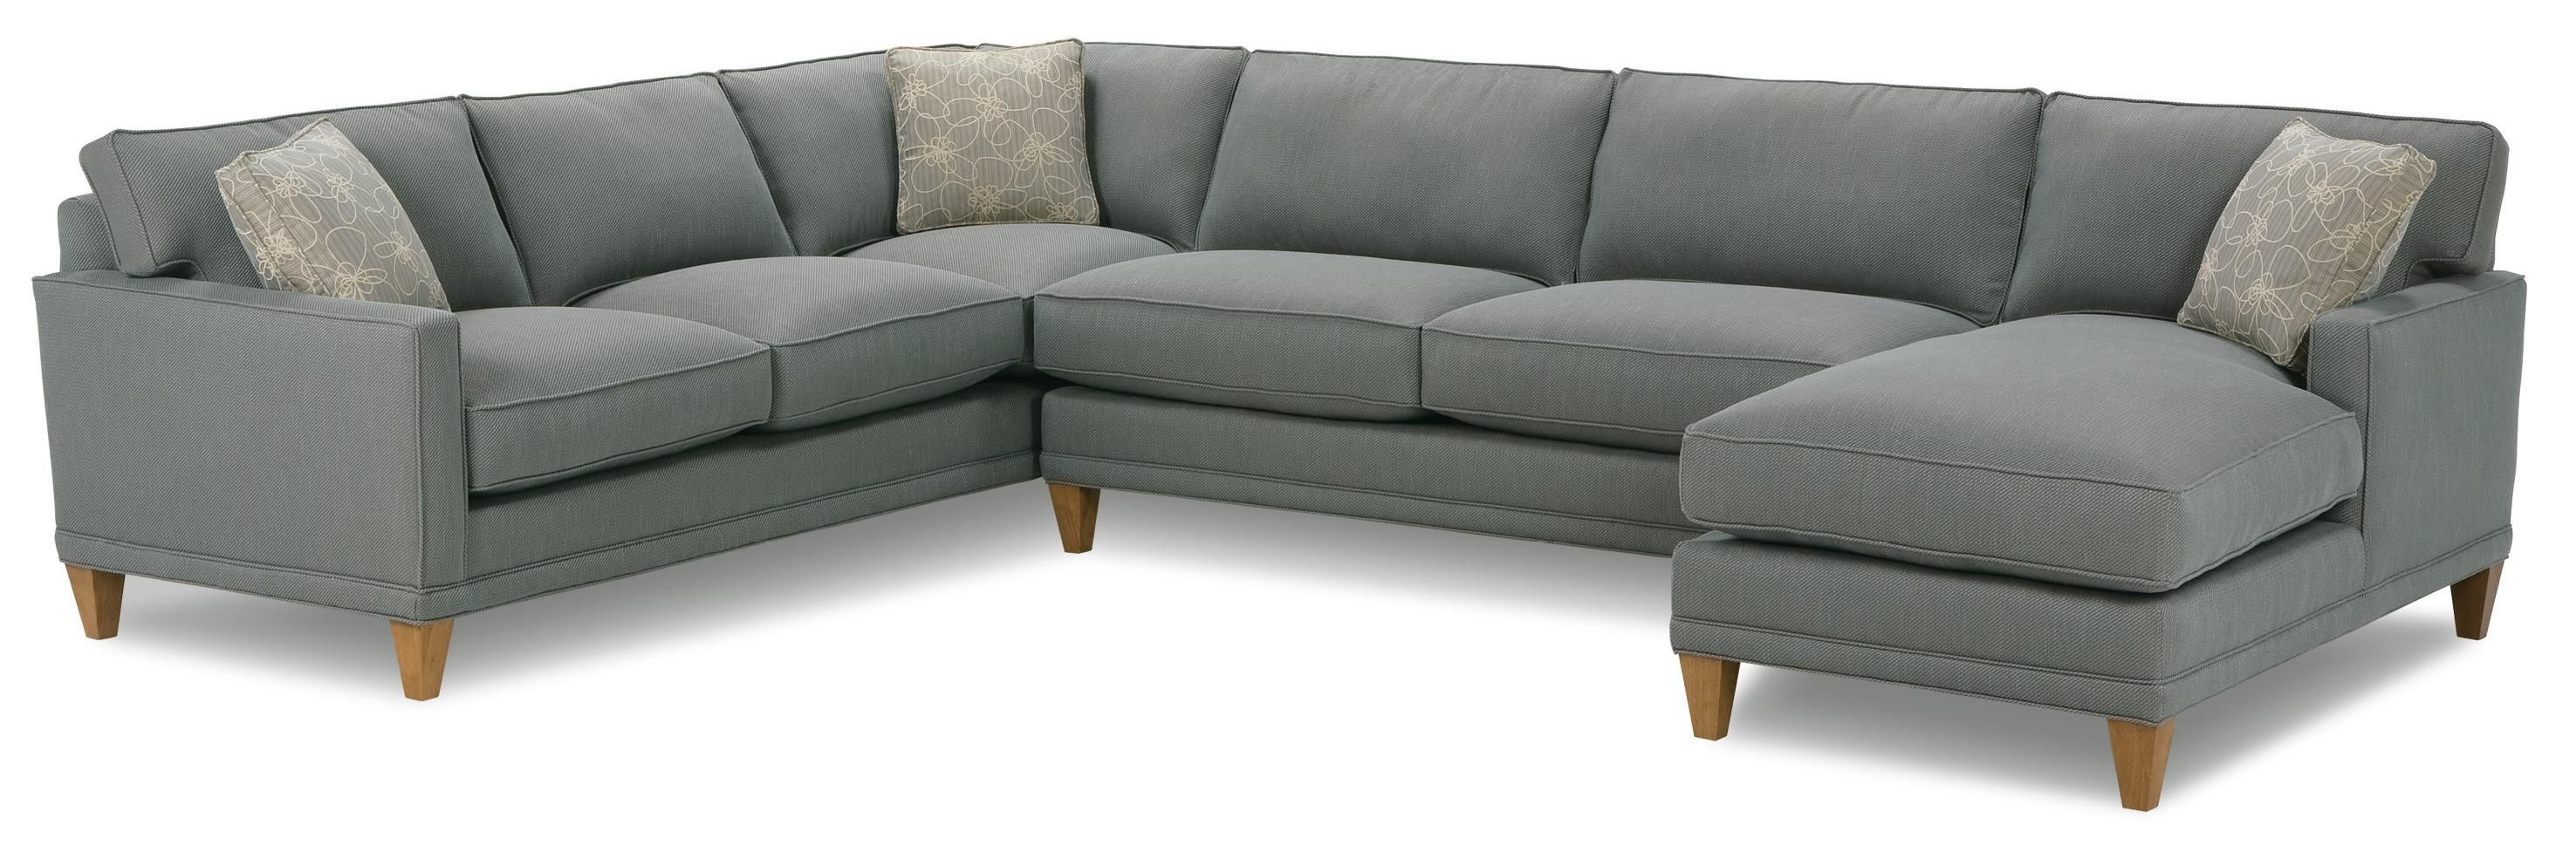 Crisp contemporary modular sectional sofa can be rearranged to fit